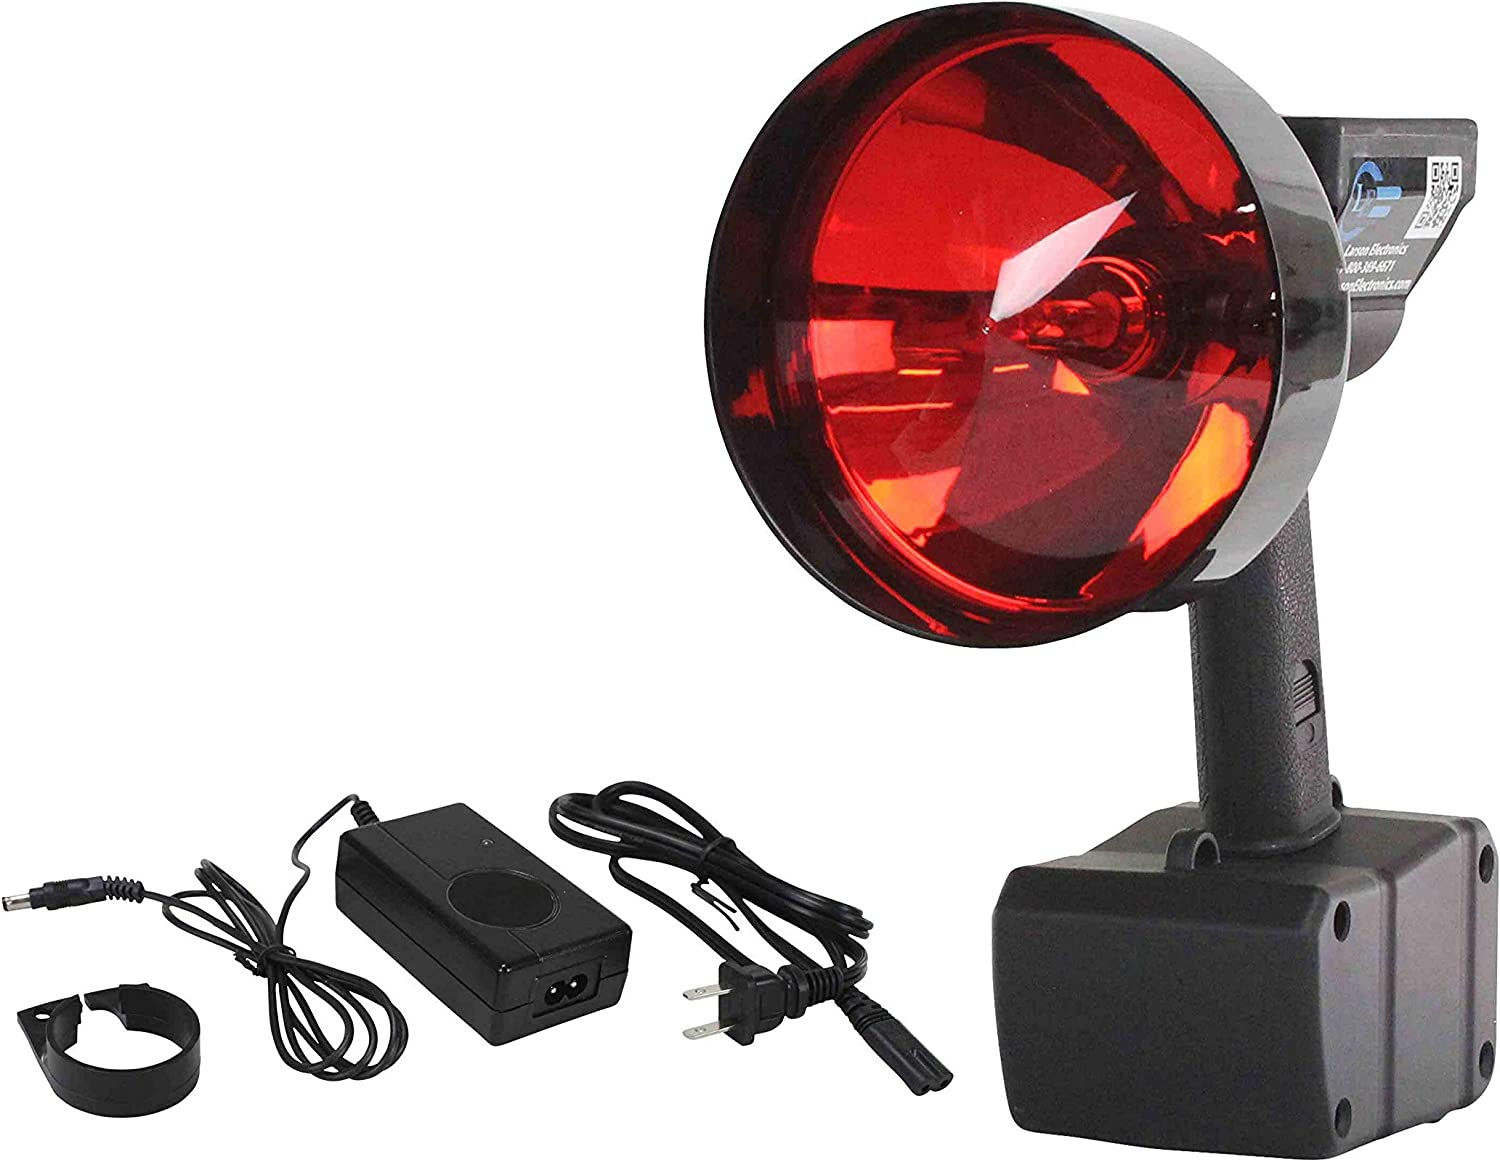 21 Cord w//Ring Terminals 15 Million Candlepower 12V HID Handheld Spotlight -12V-21 Ring Terms